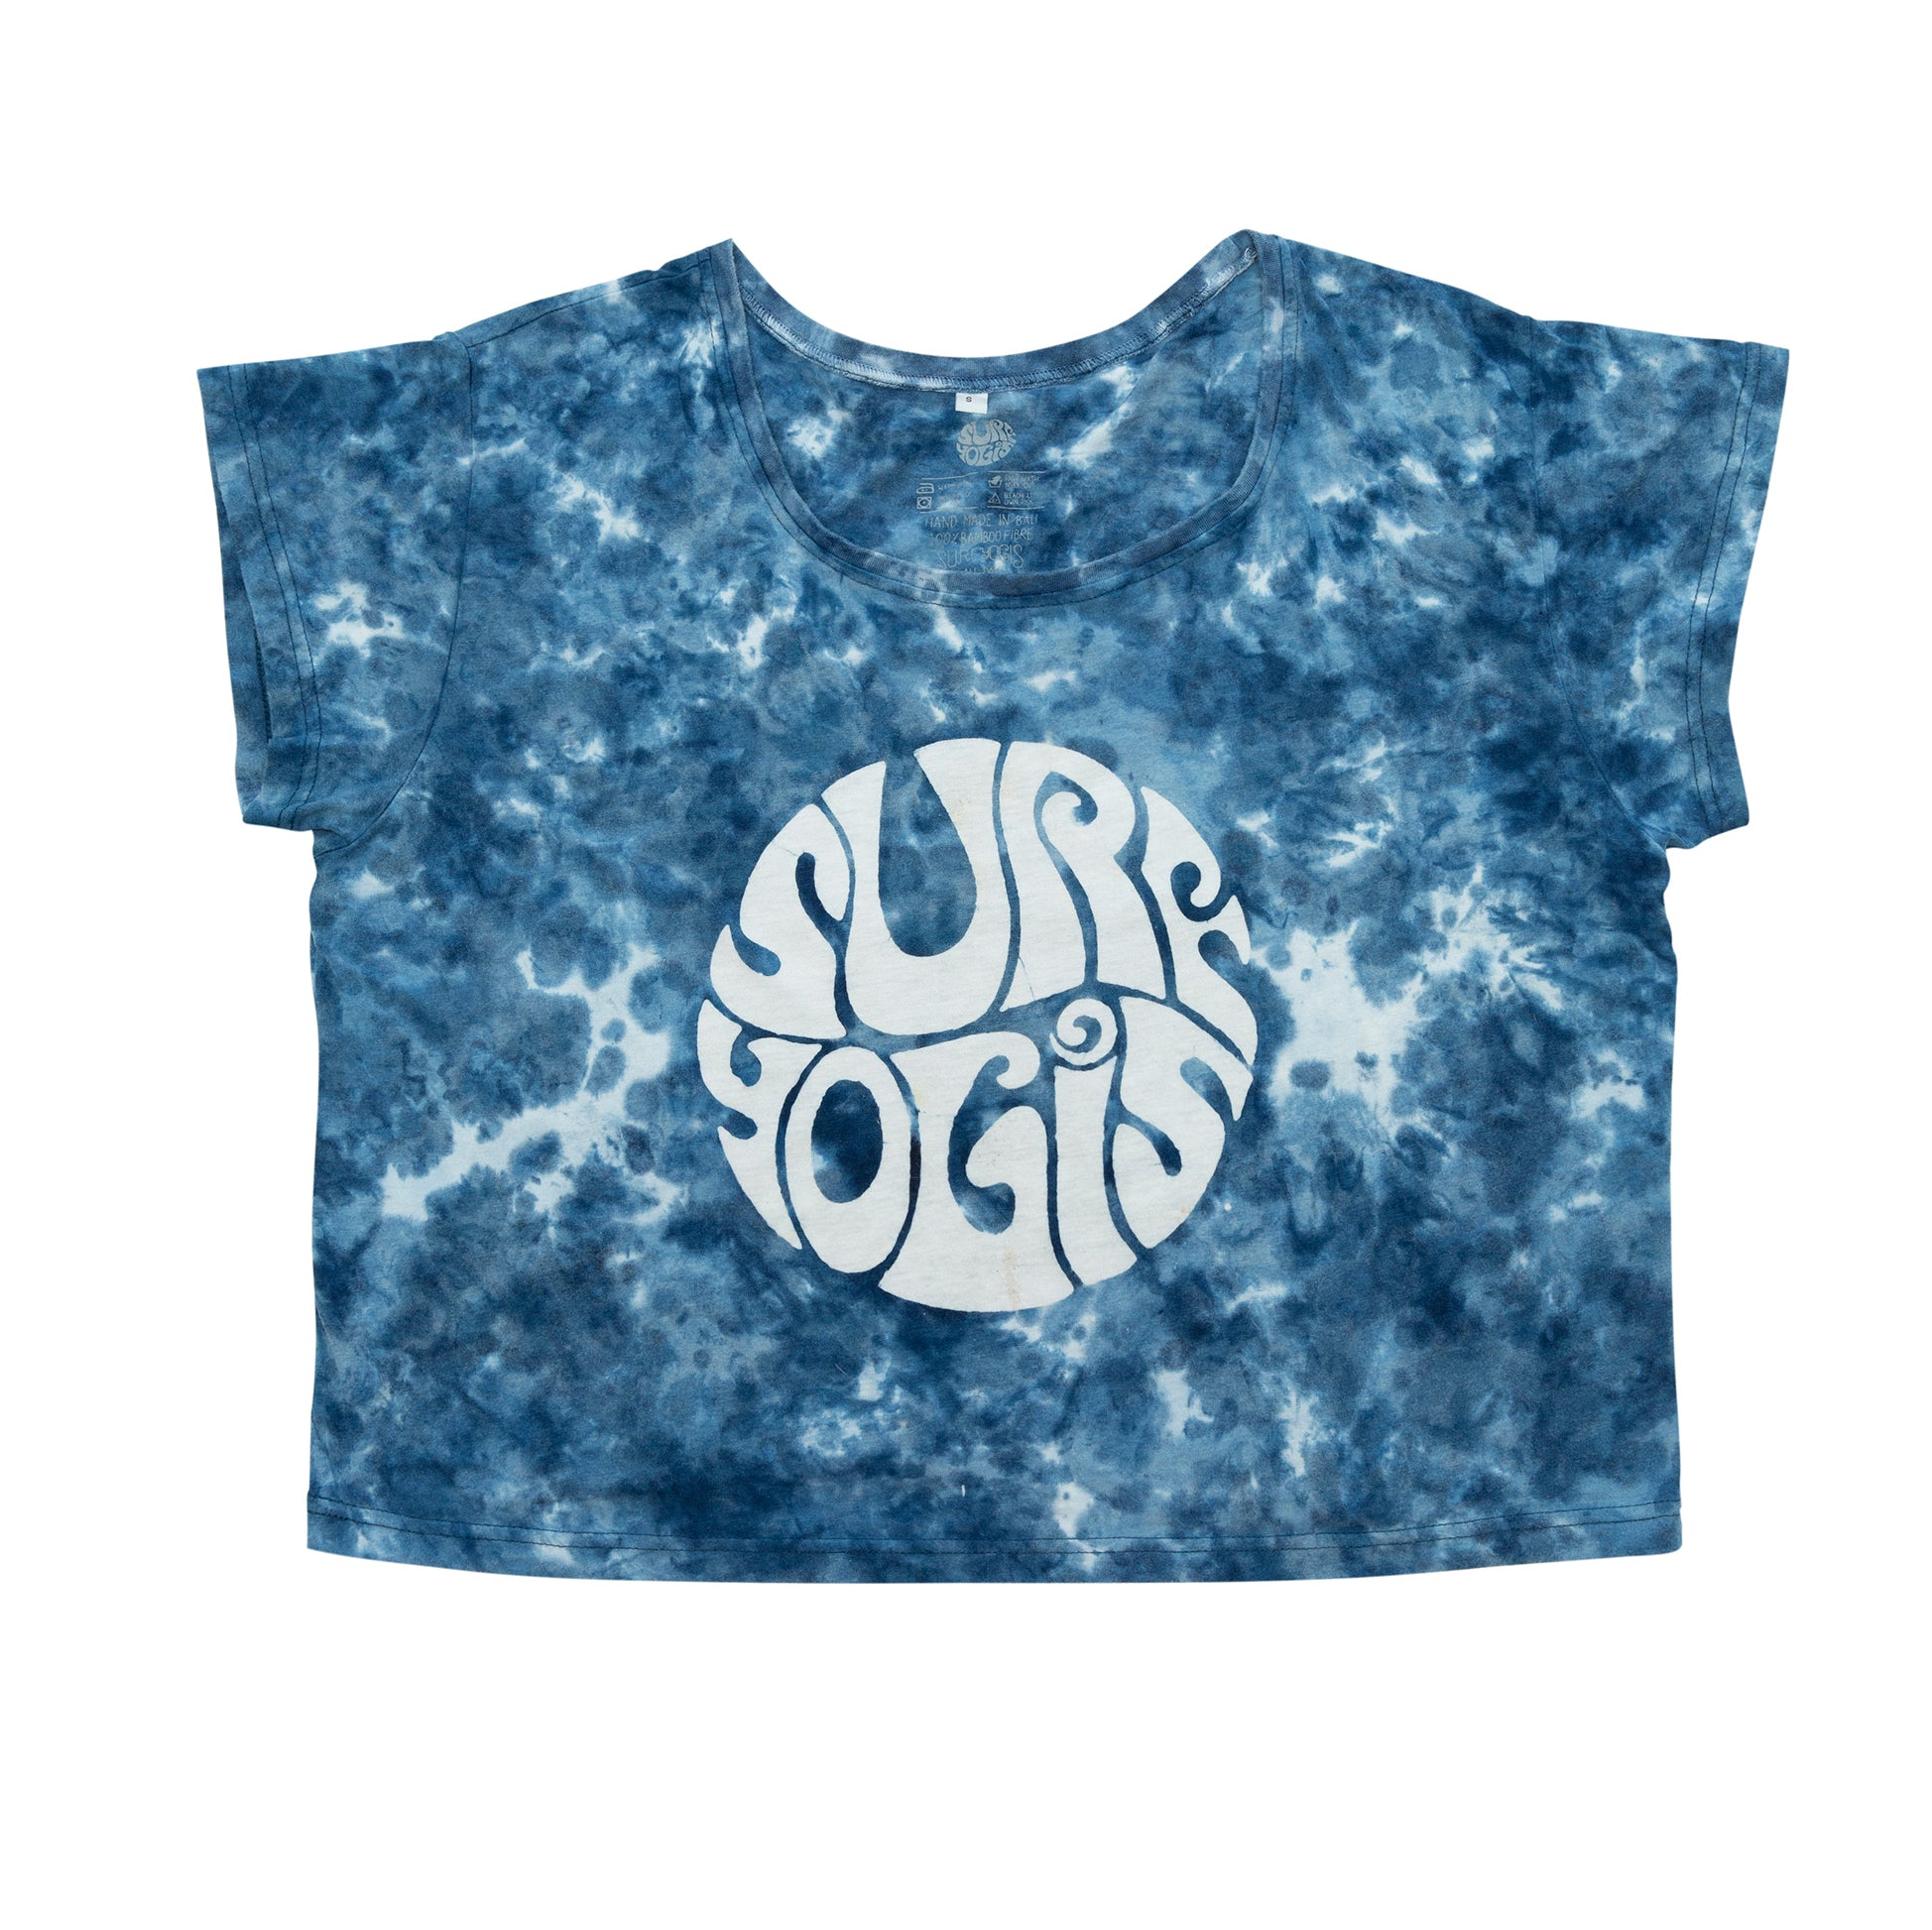 Blue tie dye t-shirt. White logo centre front. Relaxed fit, slightly cropped